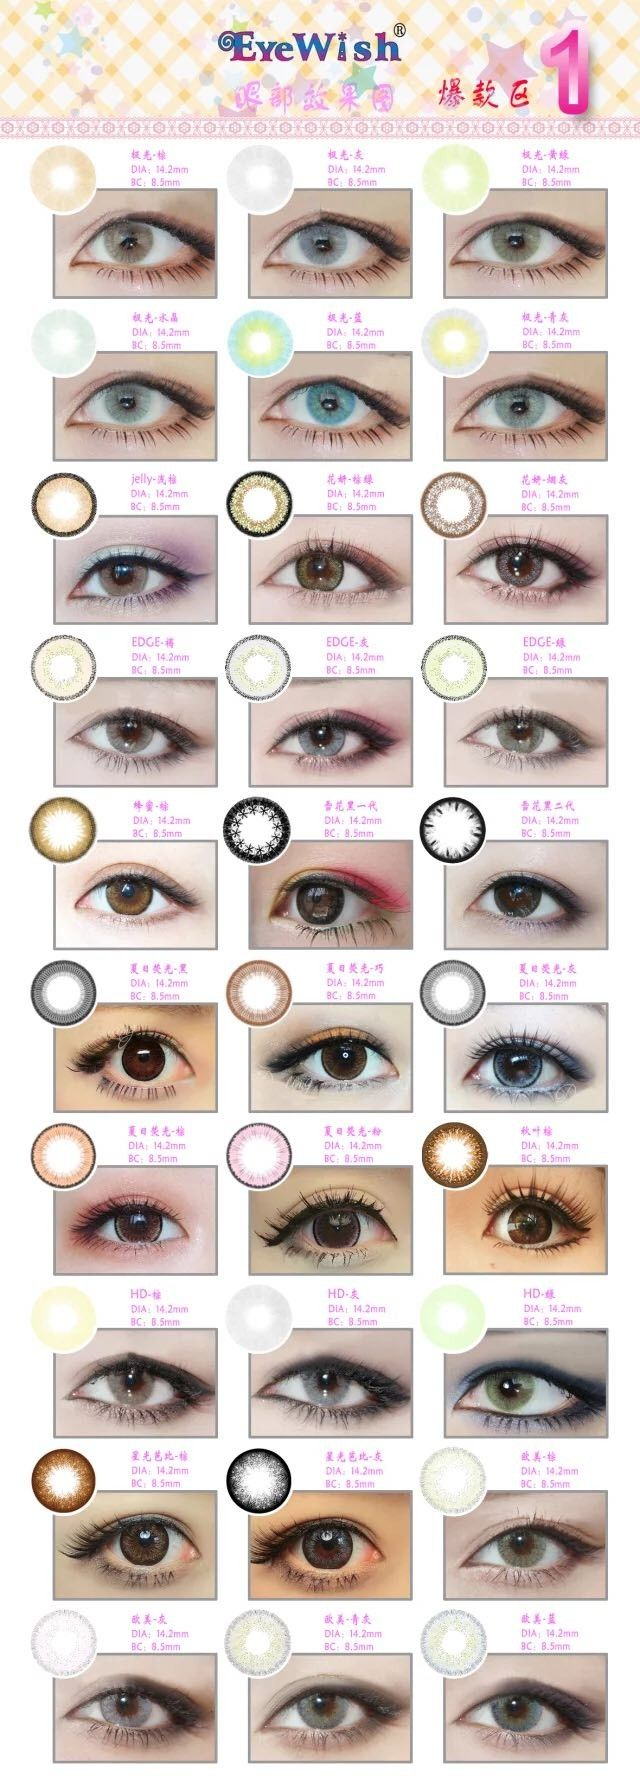 Eyewish Contact Lenses Cheap Price Clearance Sale Korea wholesale, View eye contact lenses, Eyewish Product Details from Jieyang Sincere Trade Co., Ltd. on Alibaba.com